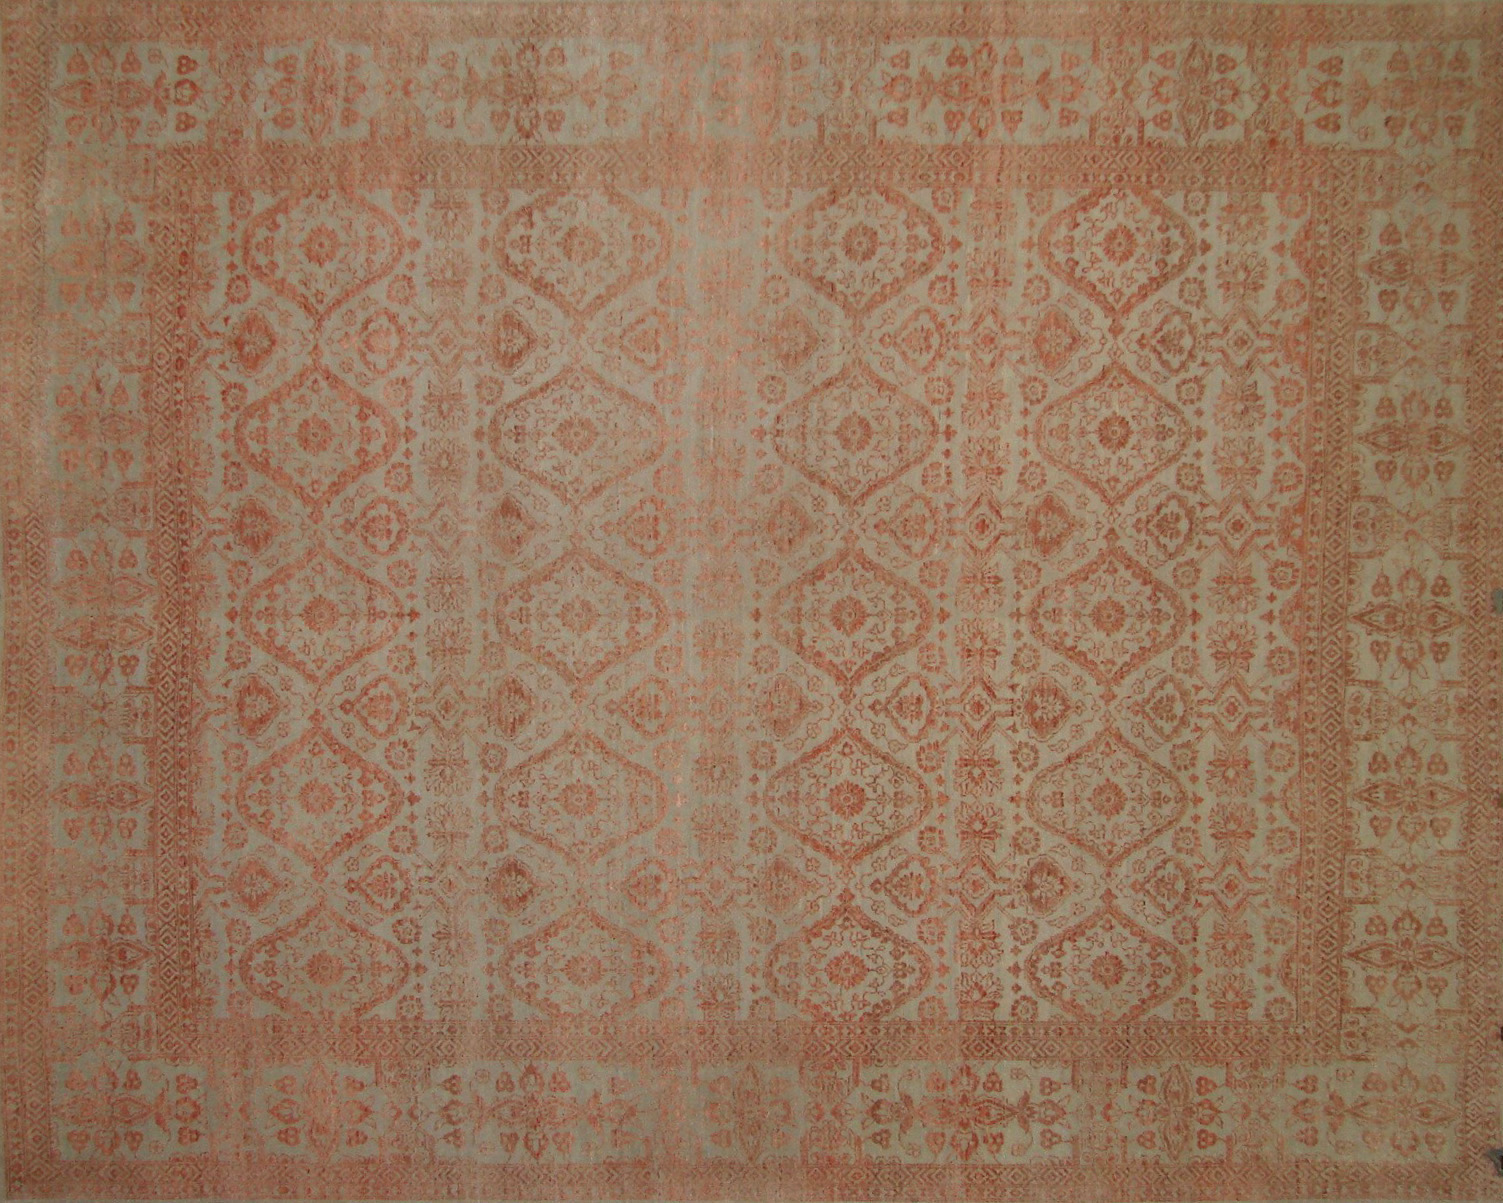 8x10 Contemporary Hand Knotted Wool Area Rug - MR20991